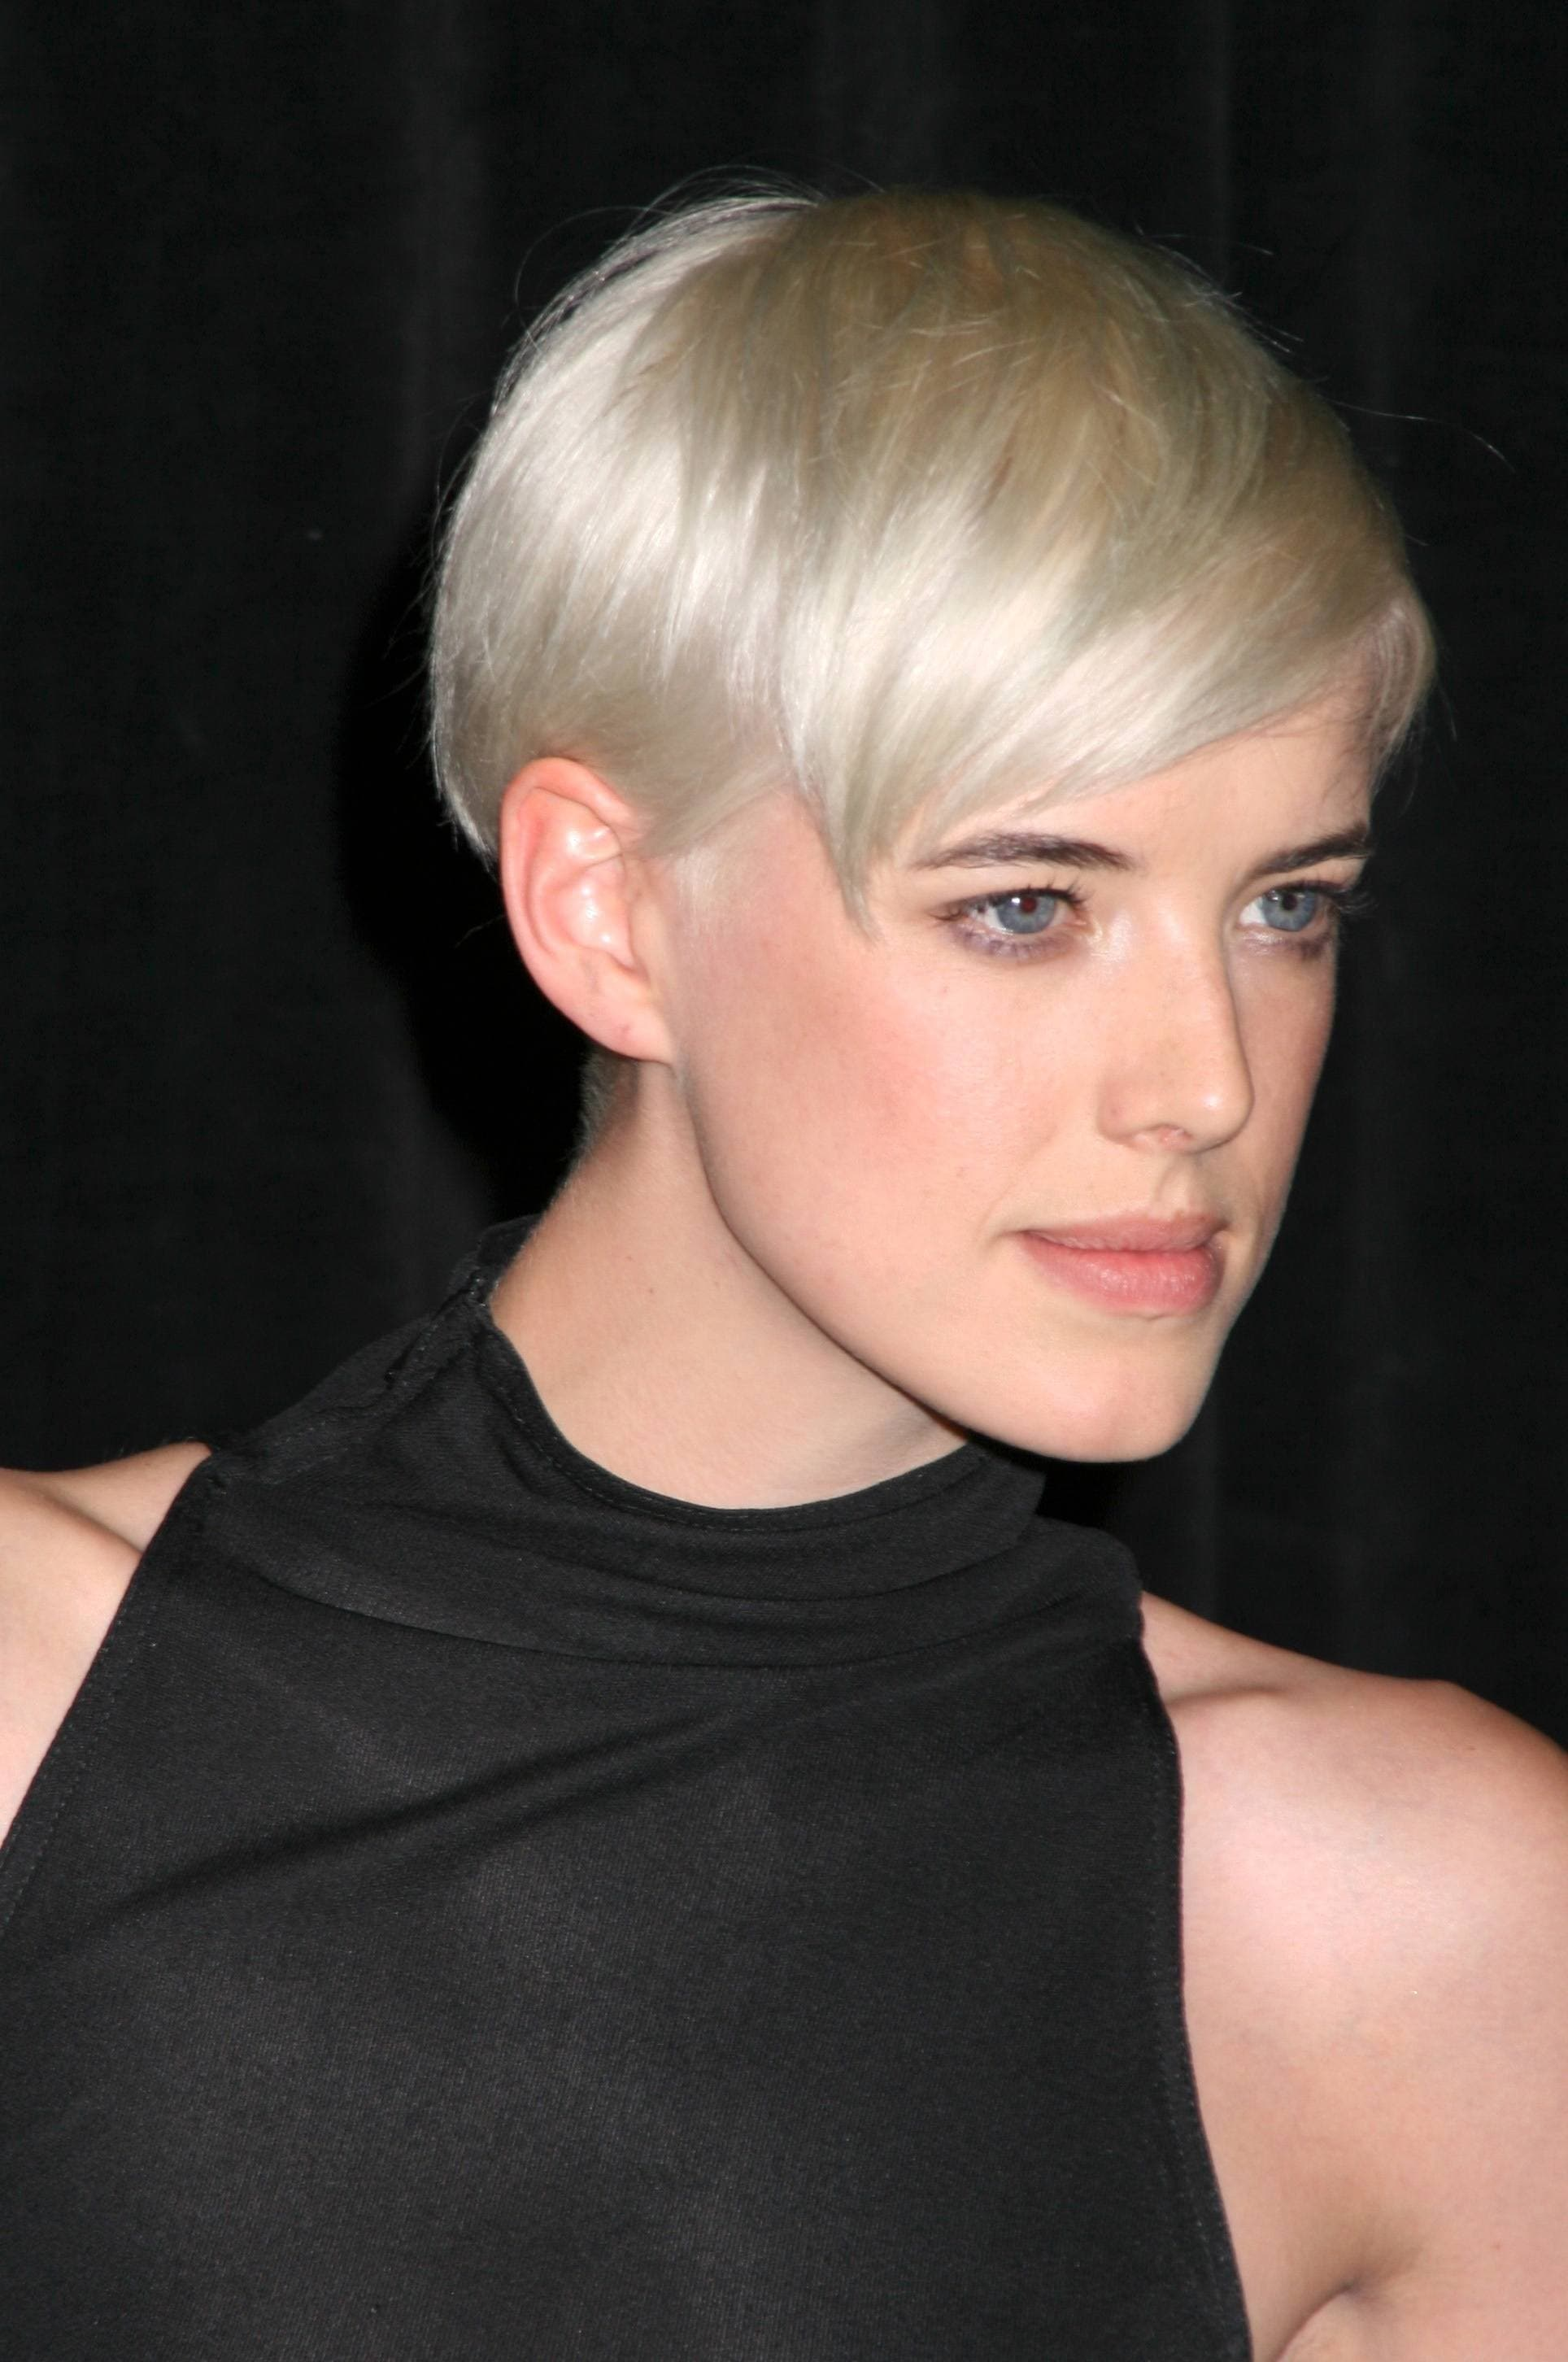 Agyness Deyn - 2008 - Short platinum blonde pixie cut - Rex